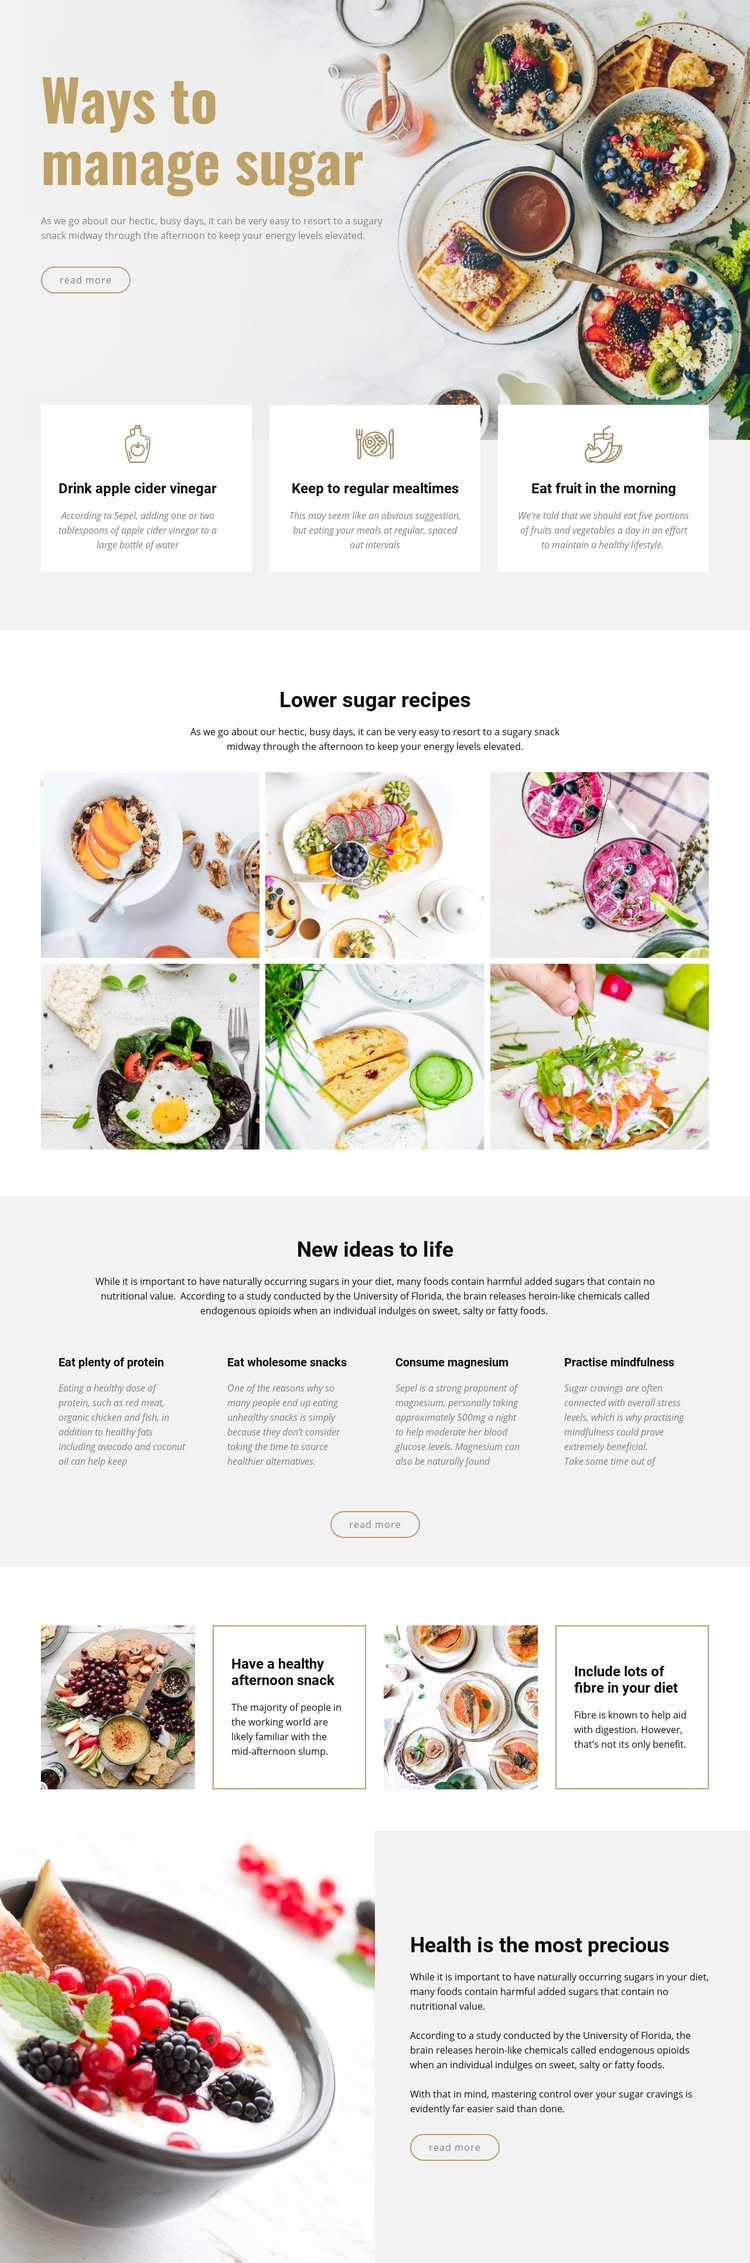 Manage sugar in food Html Code Example